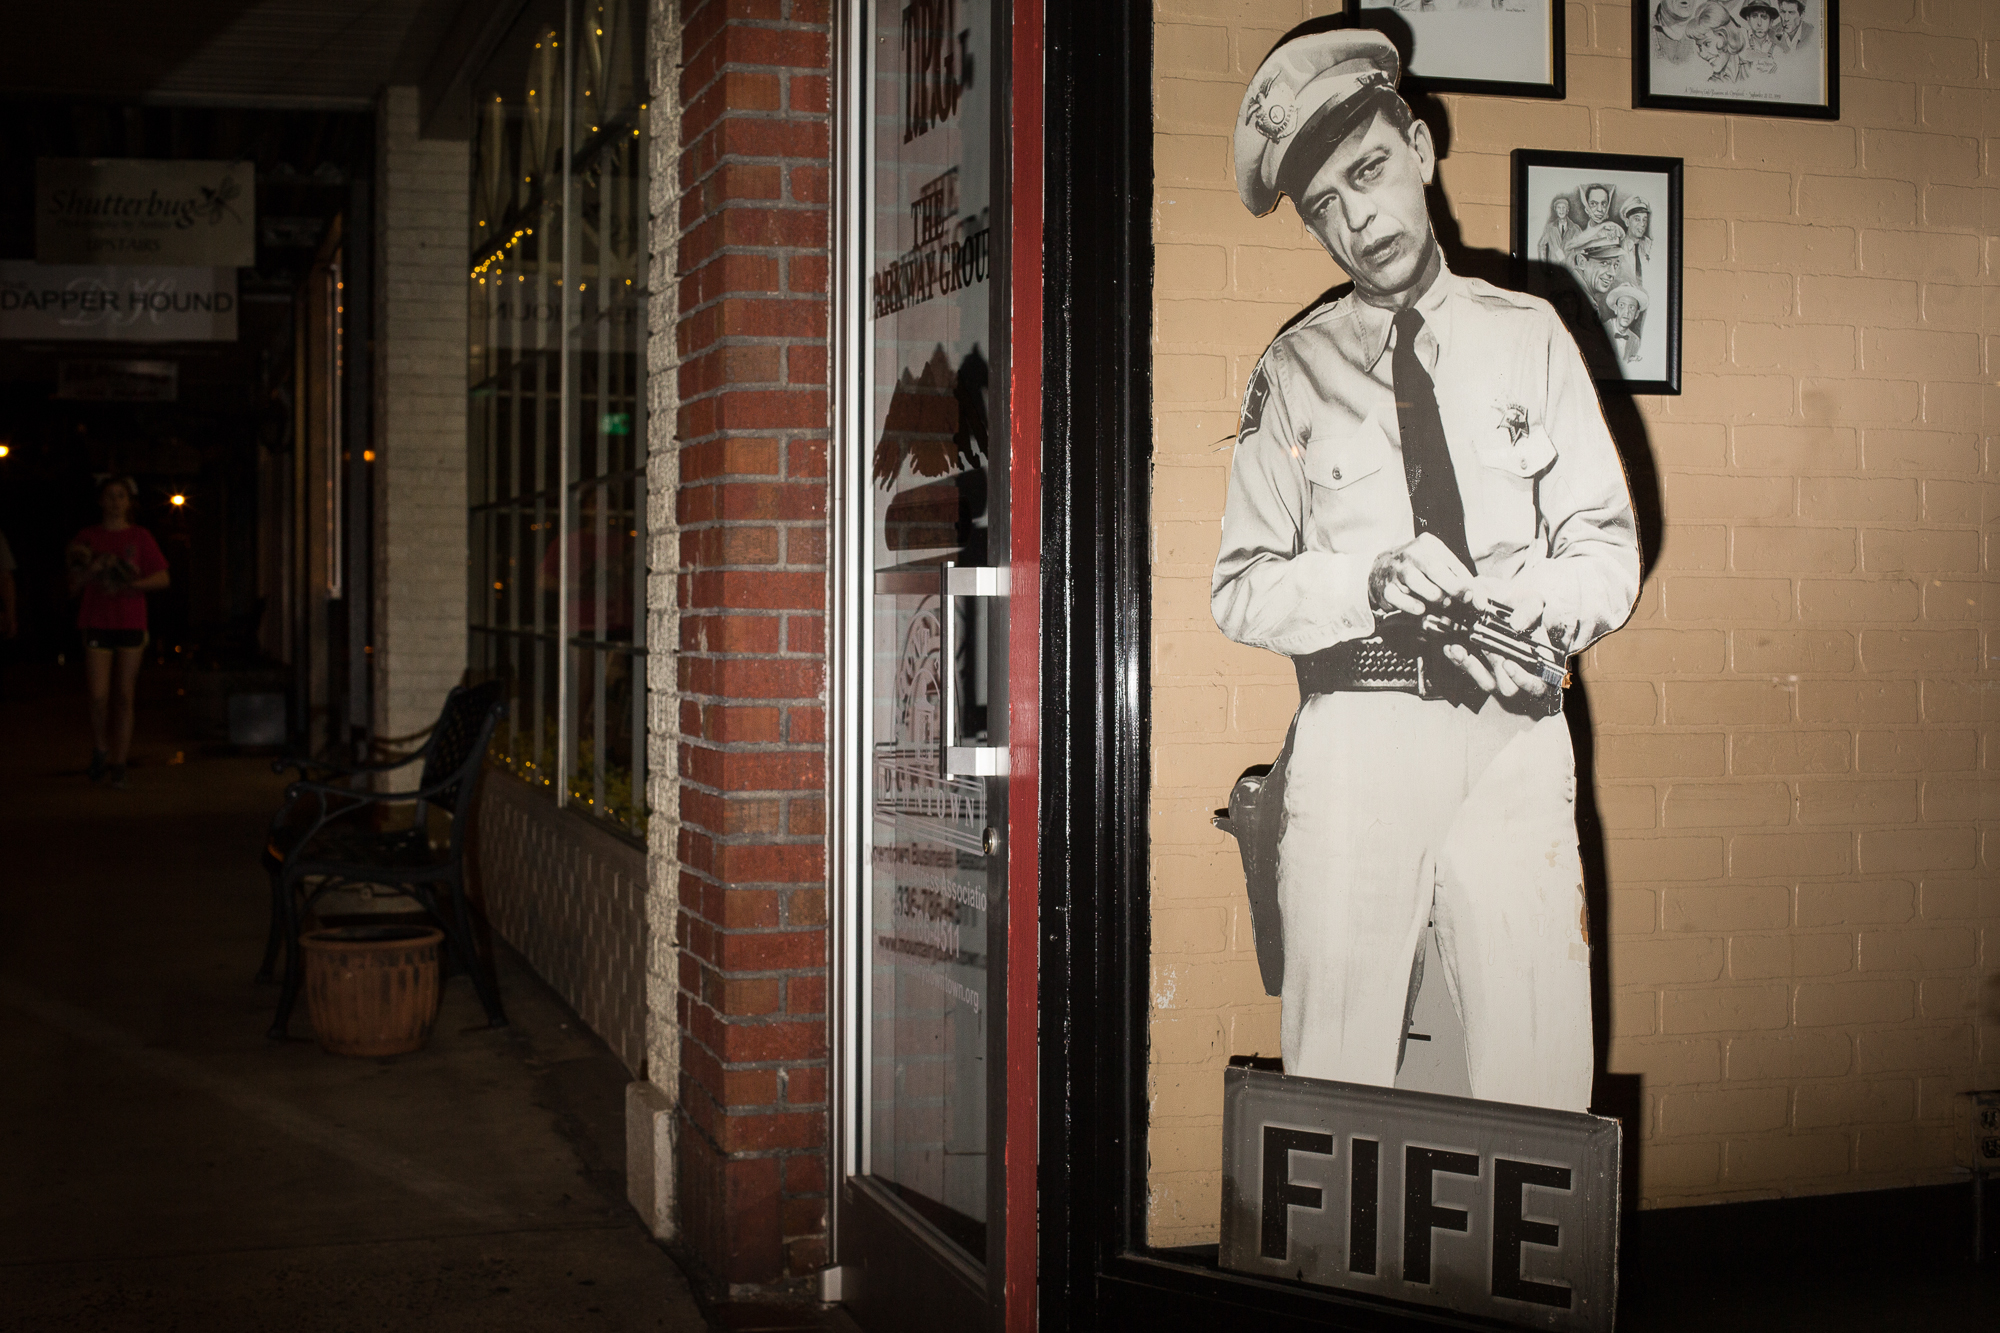 A cutout of Barney Fife of The Andy Griffith Show in a store window in Mount Airy.